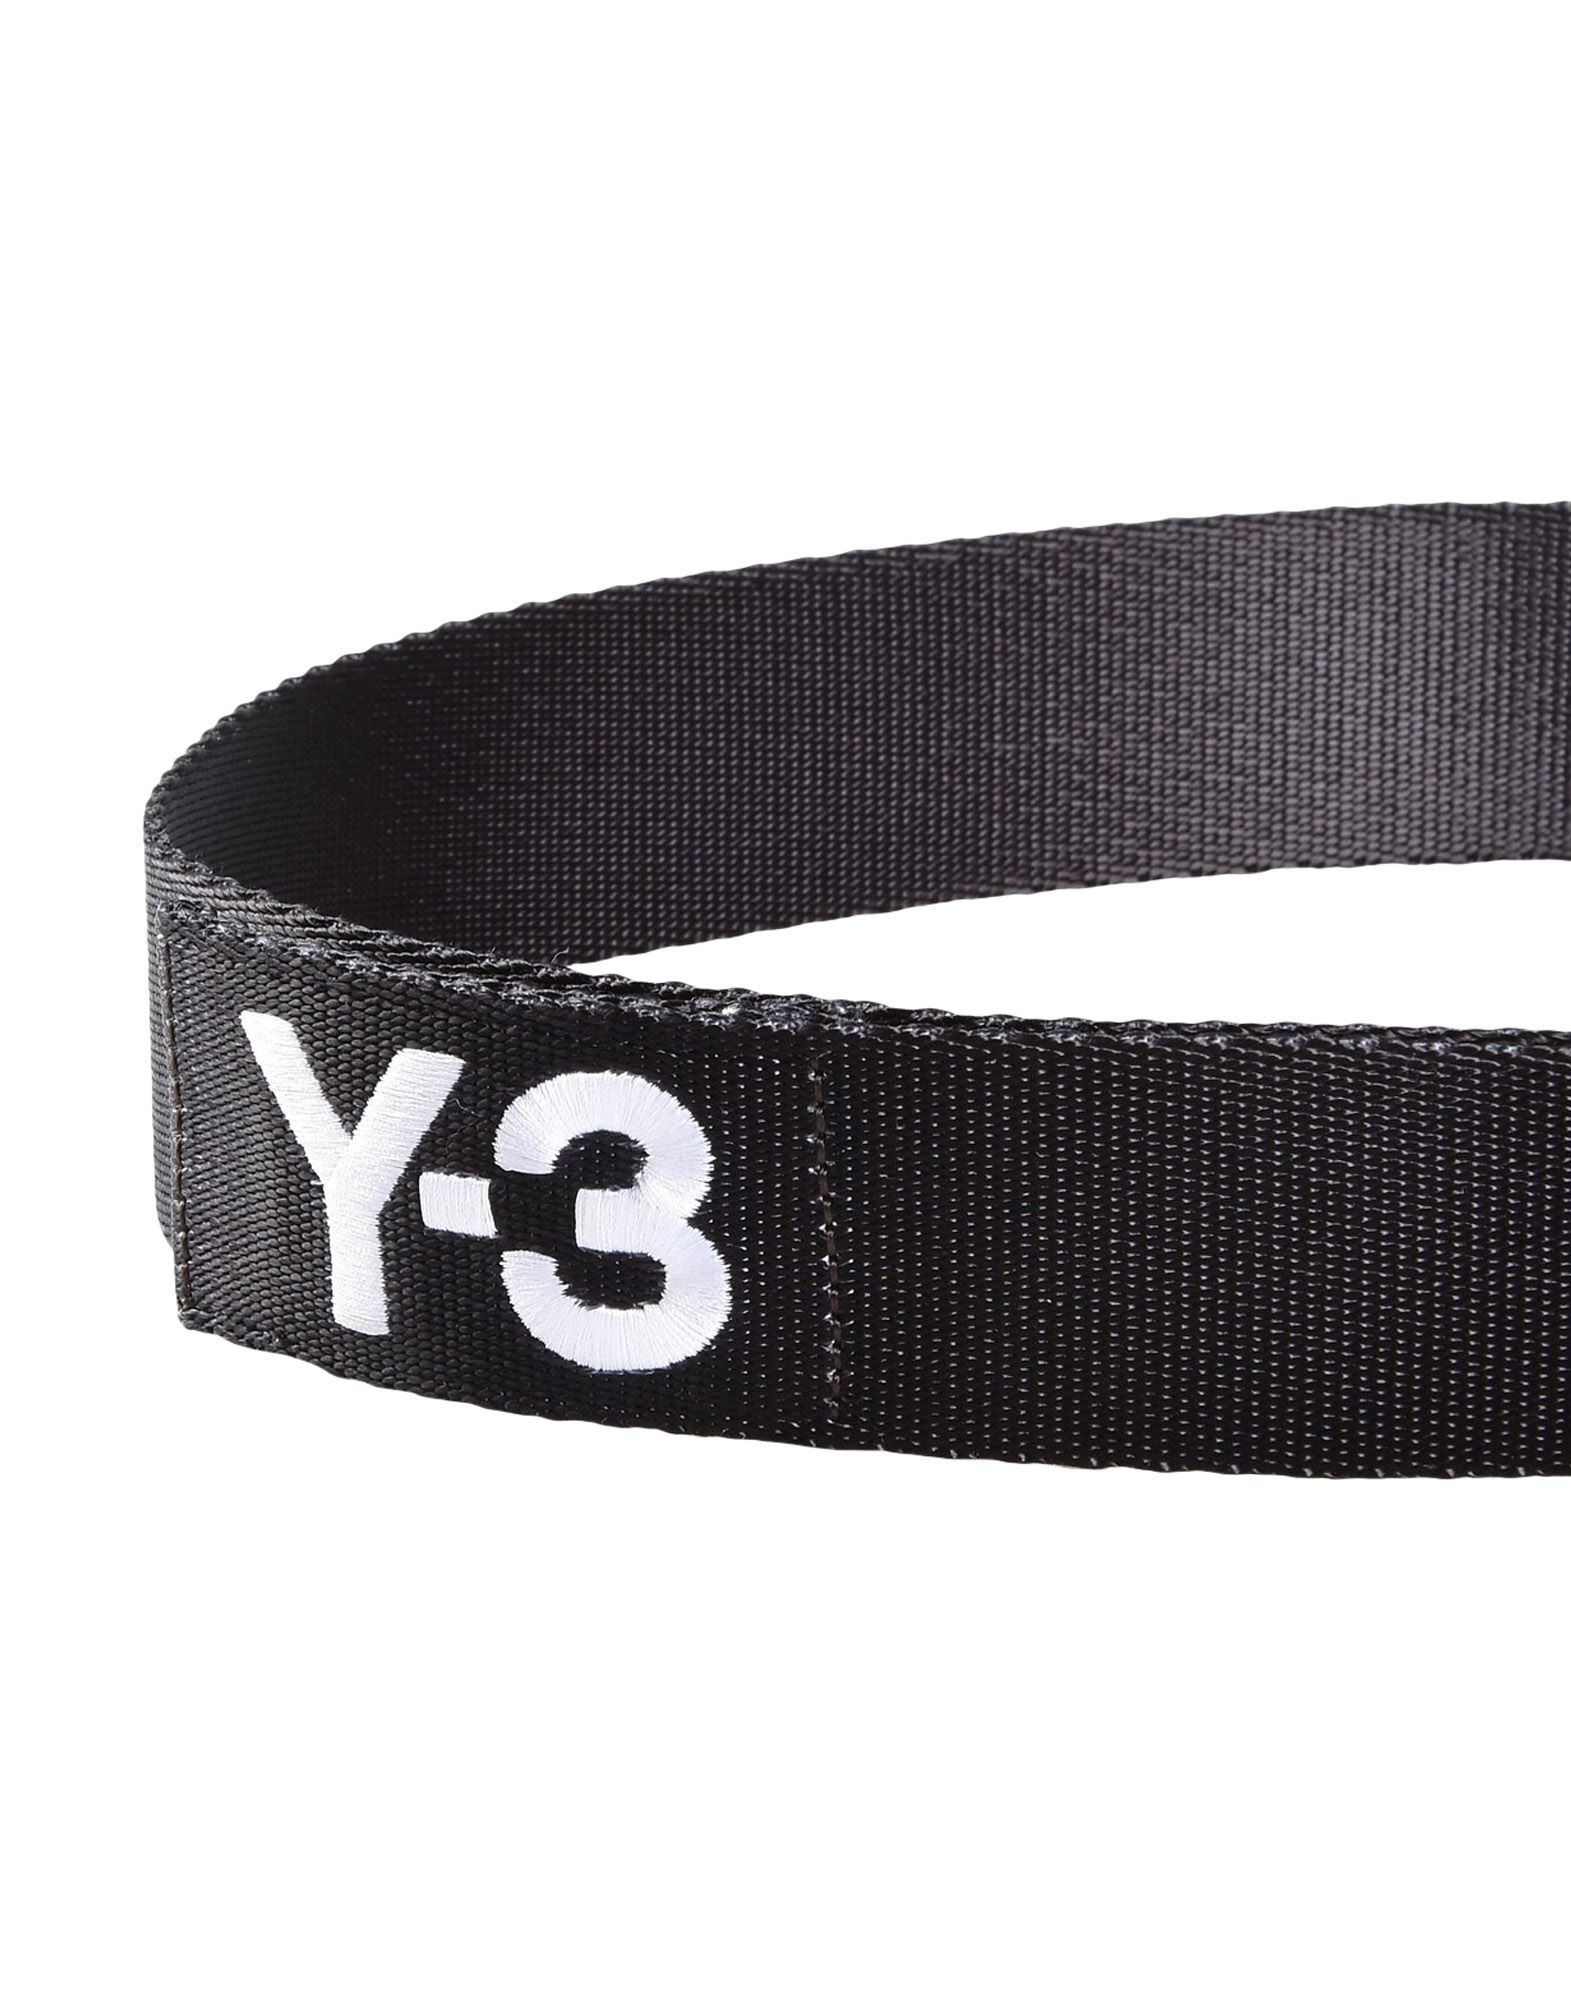 Y-3 3-STRIPES BELT OTHER ACCESSORIES unisex Y-3 adidas